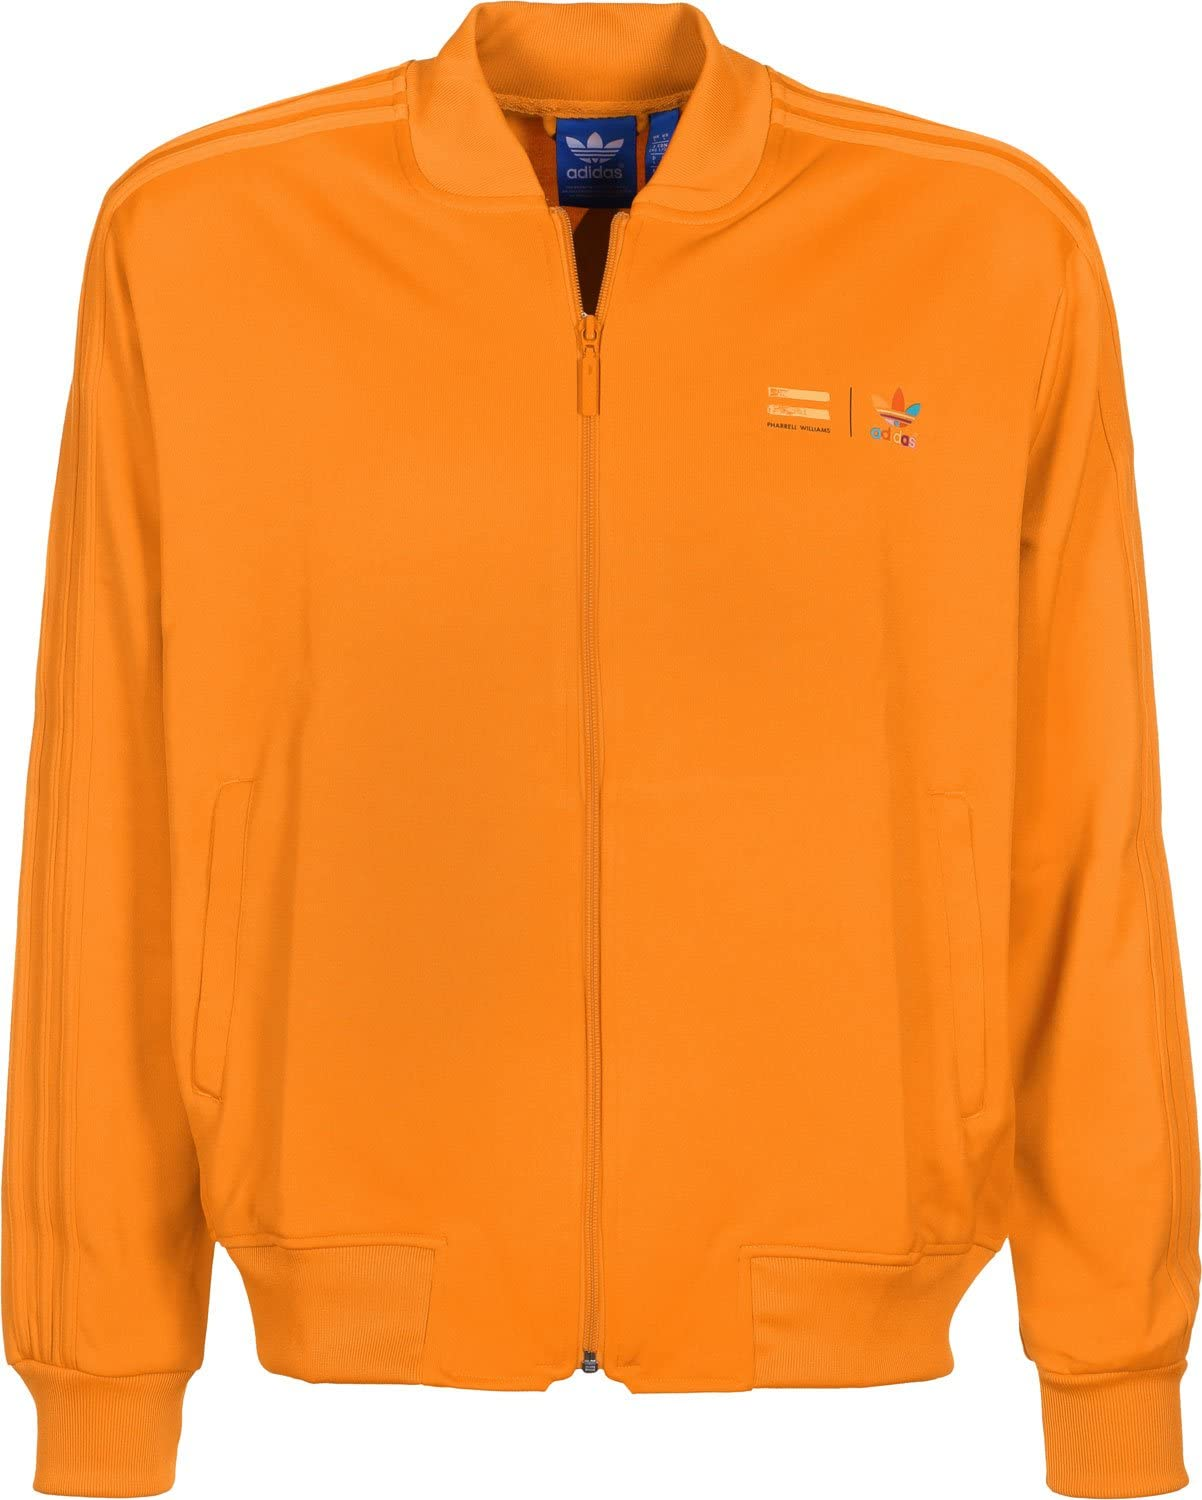 adidas Originals Veste MONO COLOR SST Orange AC5918: Amazon